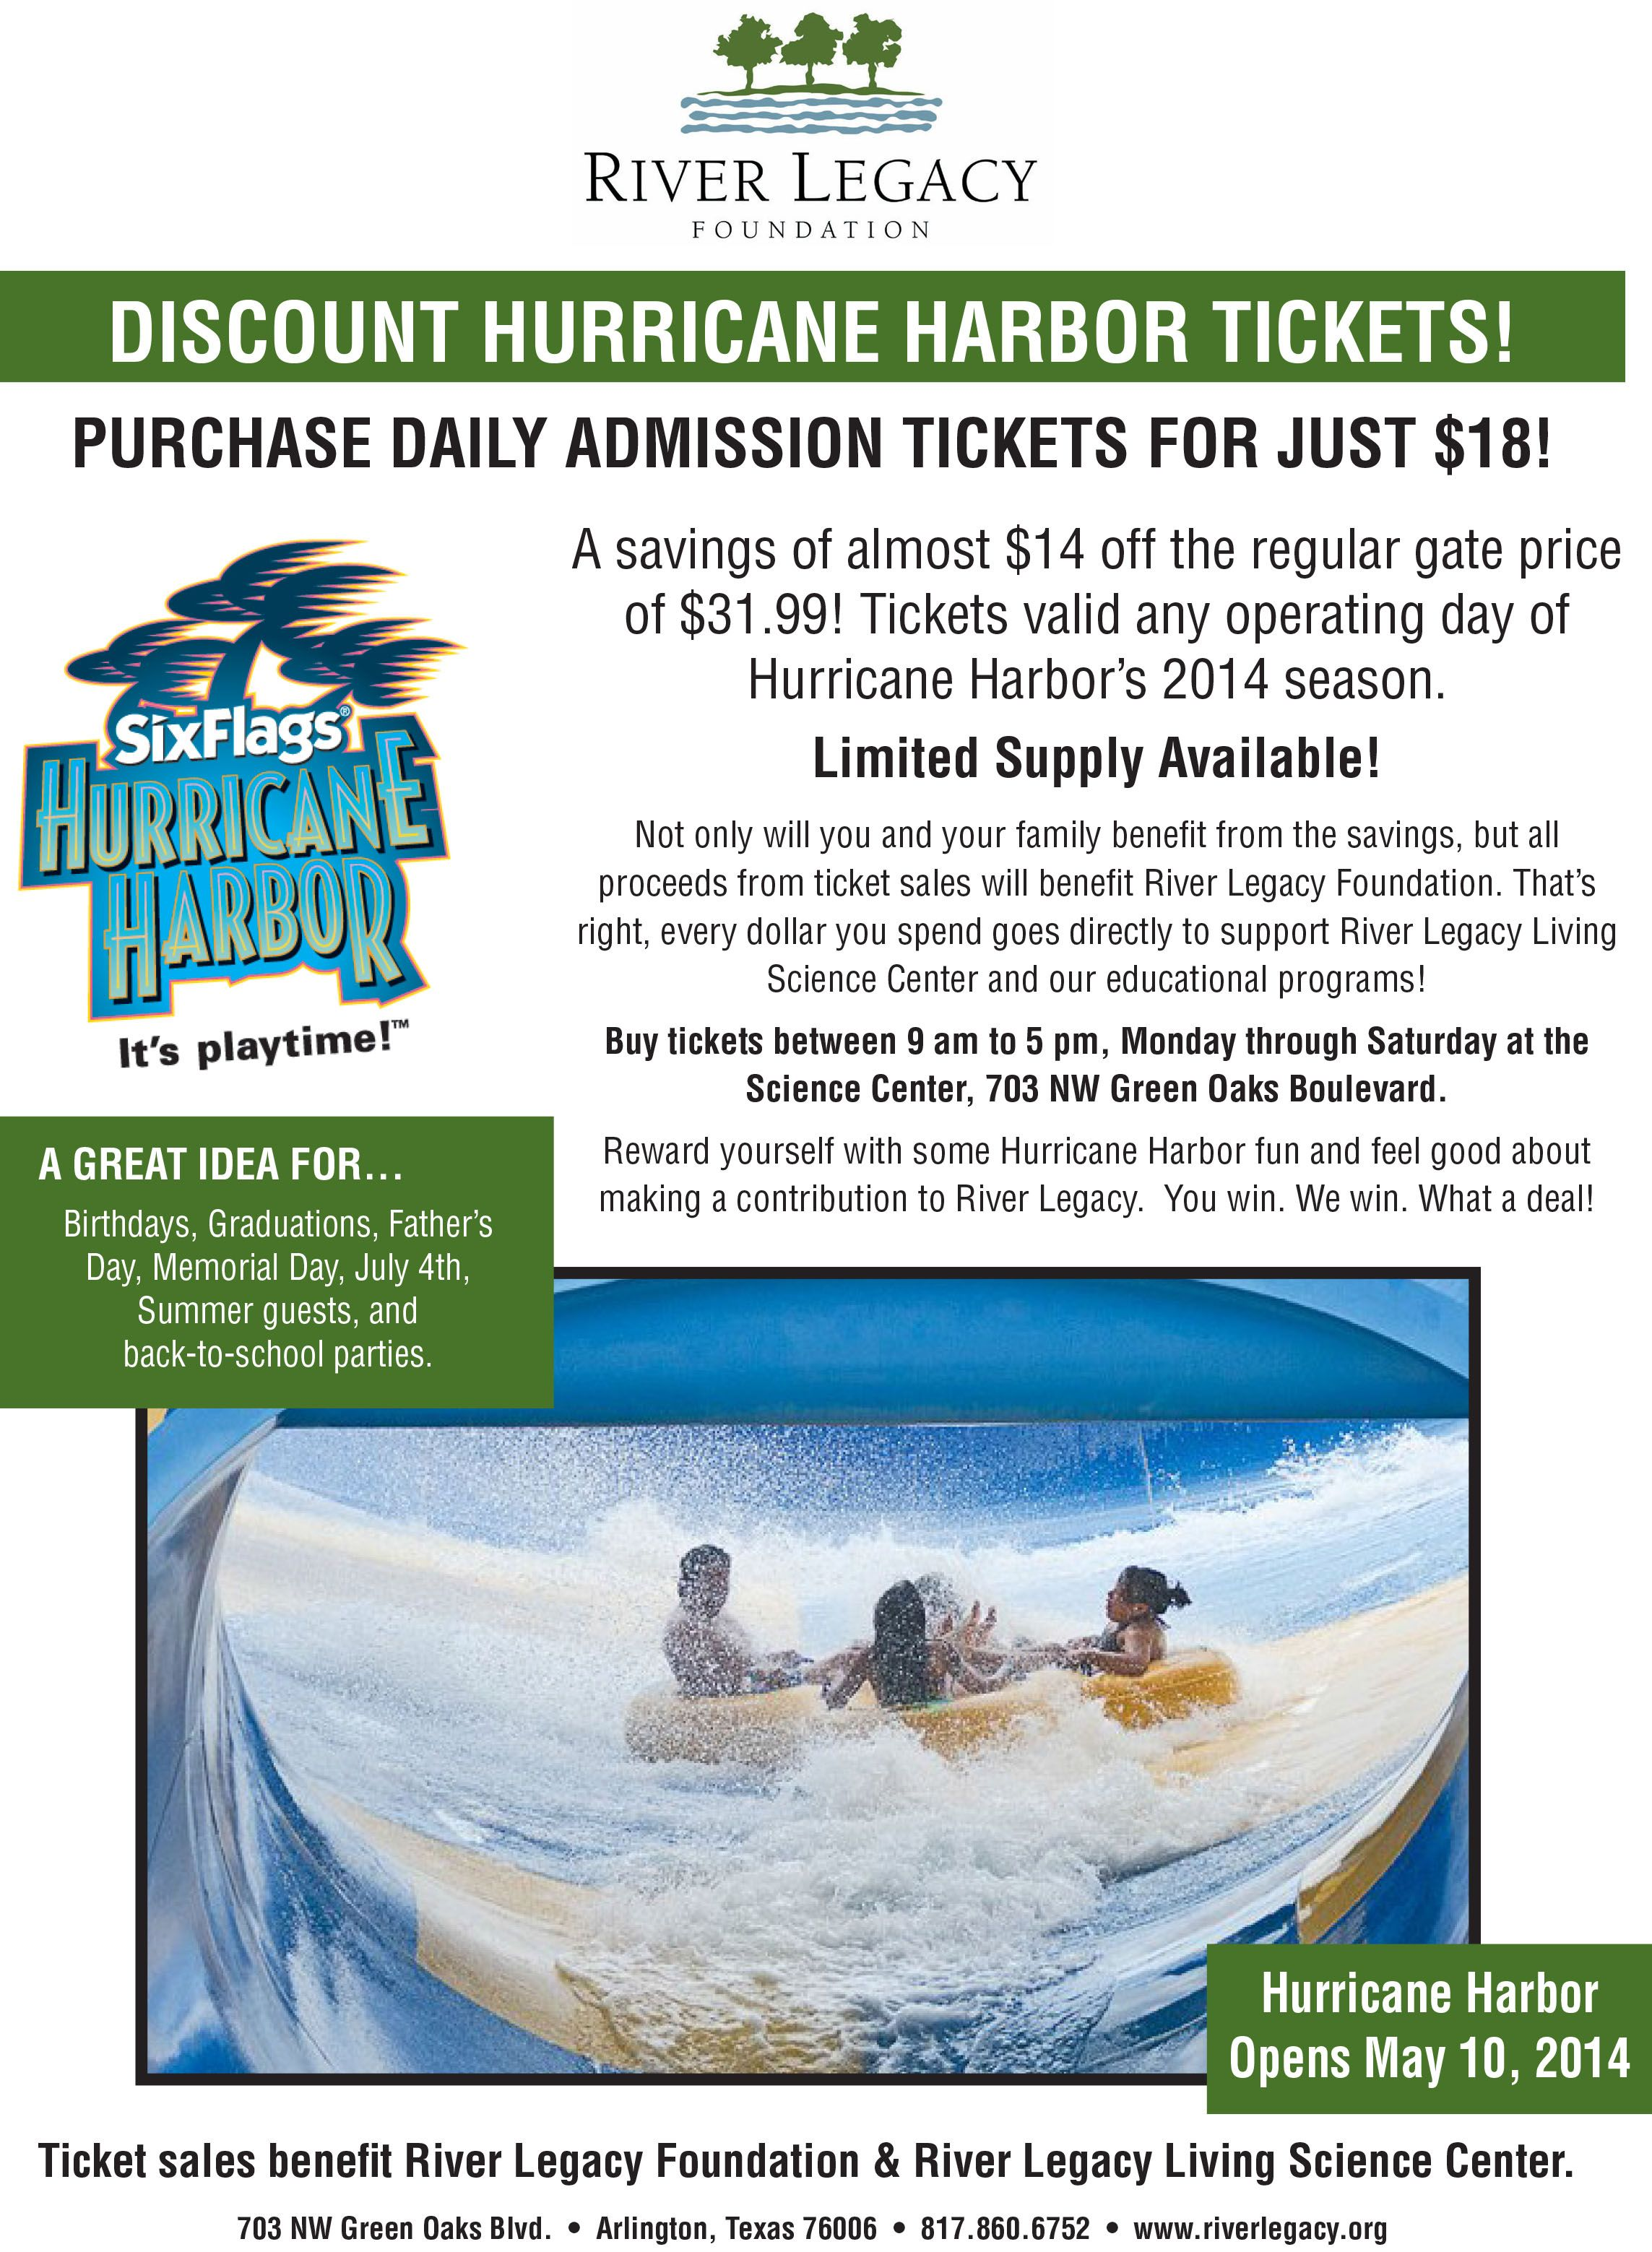 River Legacy Living Science Center Has Your Ticket To Summer Fun At Six Flags Hurricane Harbor With A Limited Supply Of Discount Tickets Hurricane Harbor Environmental Education Summer Fun